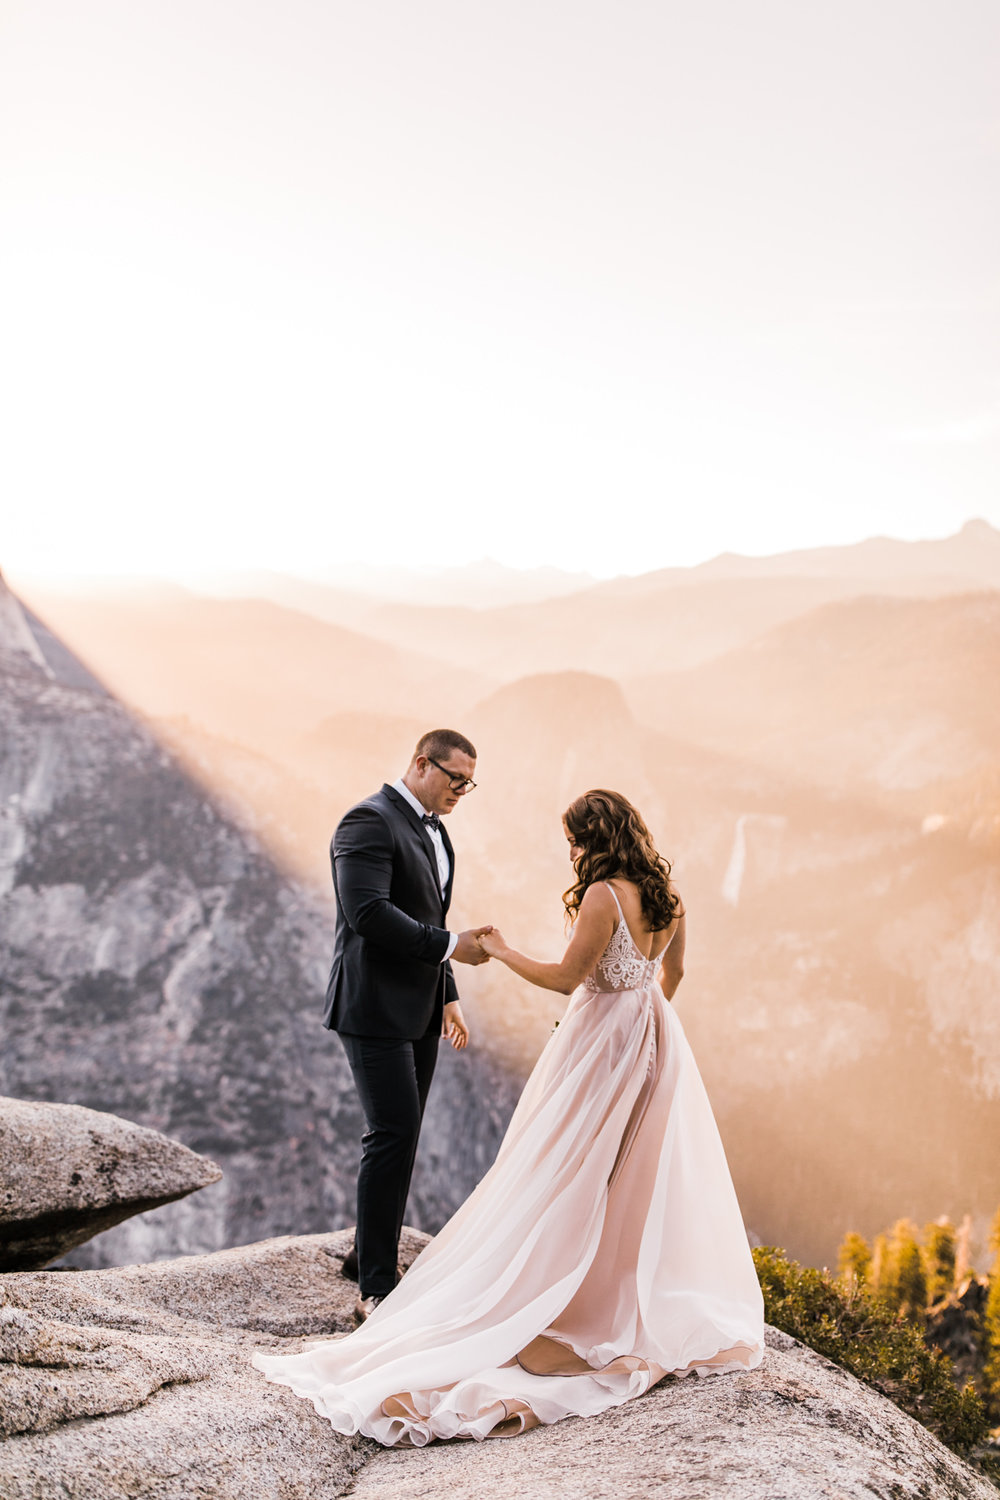 Taft-Point-Glacier-Yosemite-National-Park-Adventure-Elopement-Photographer-Wedding-Photography-6.jpg